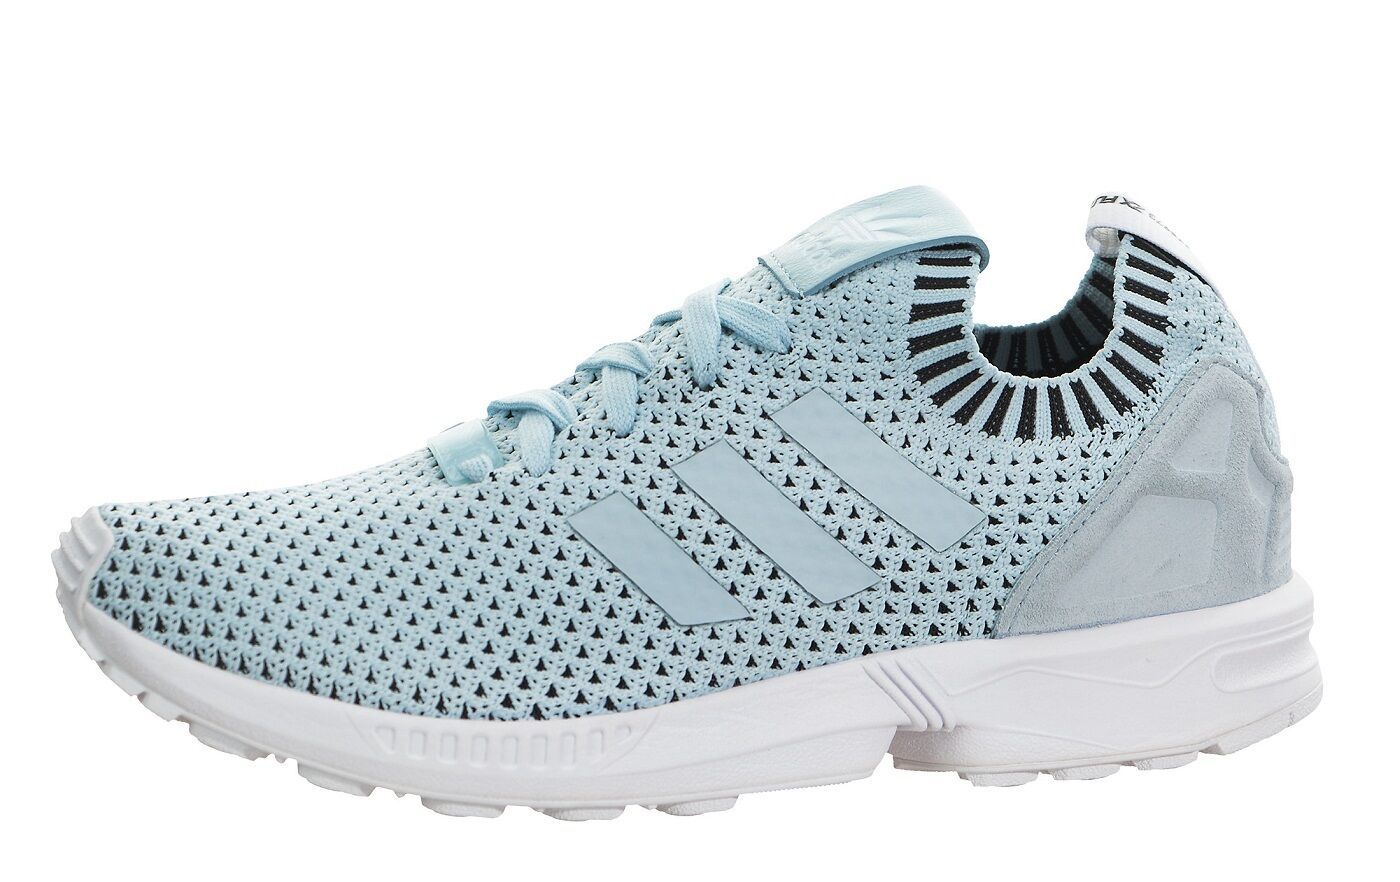 Adidas ZX Flux Primeknit Mens S75973 Ice Blue Running Training Shoes Size 8.5